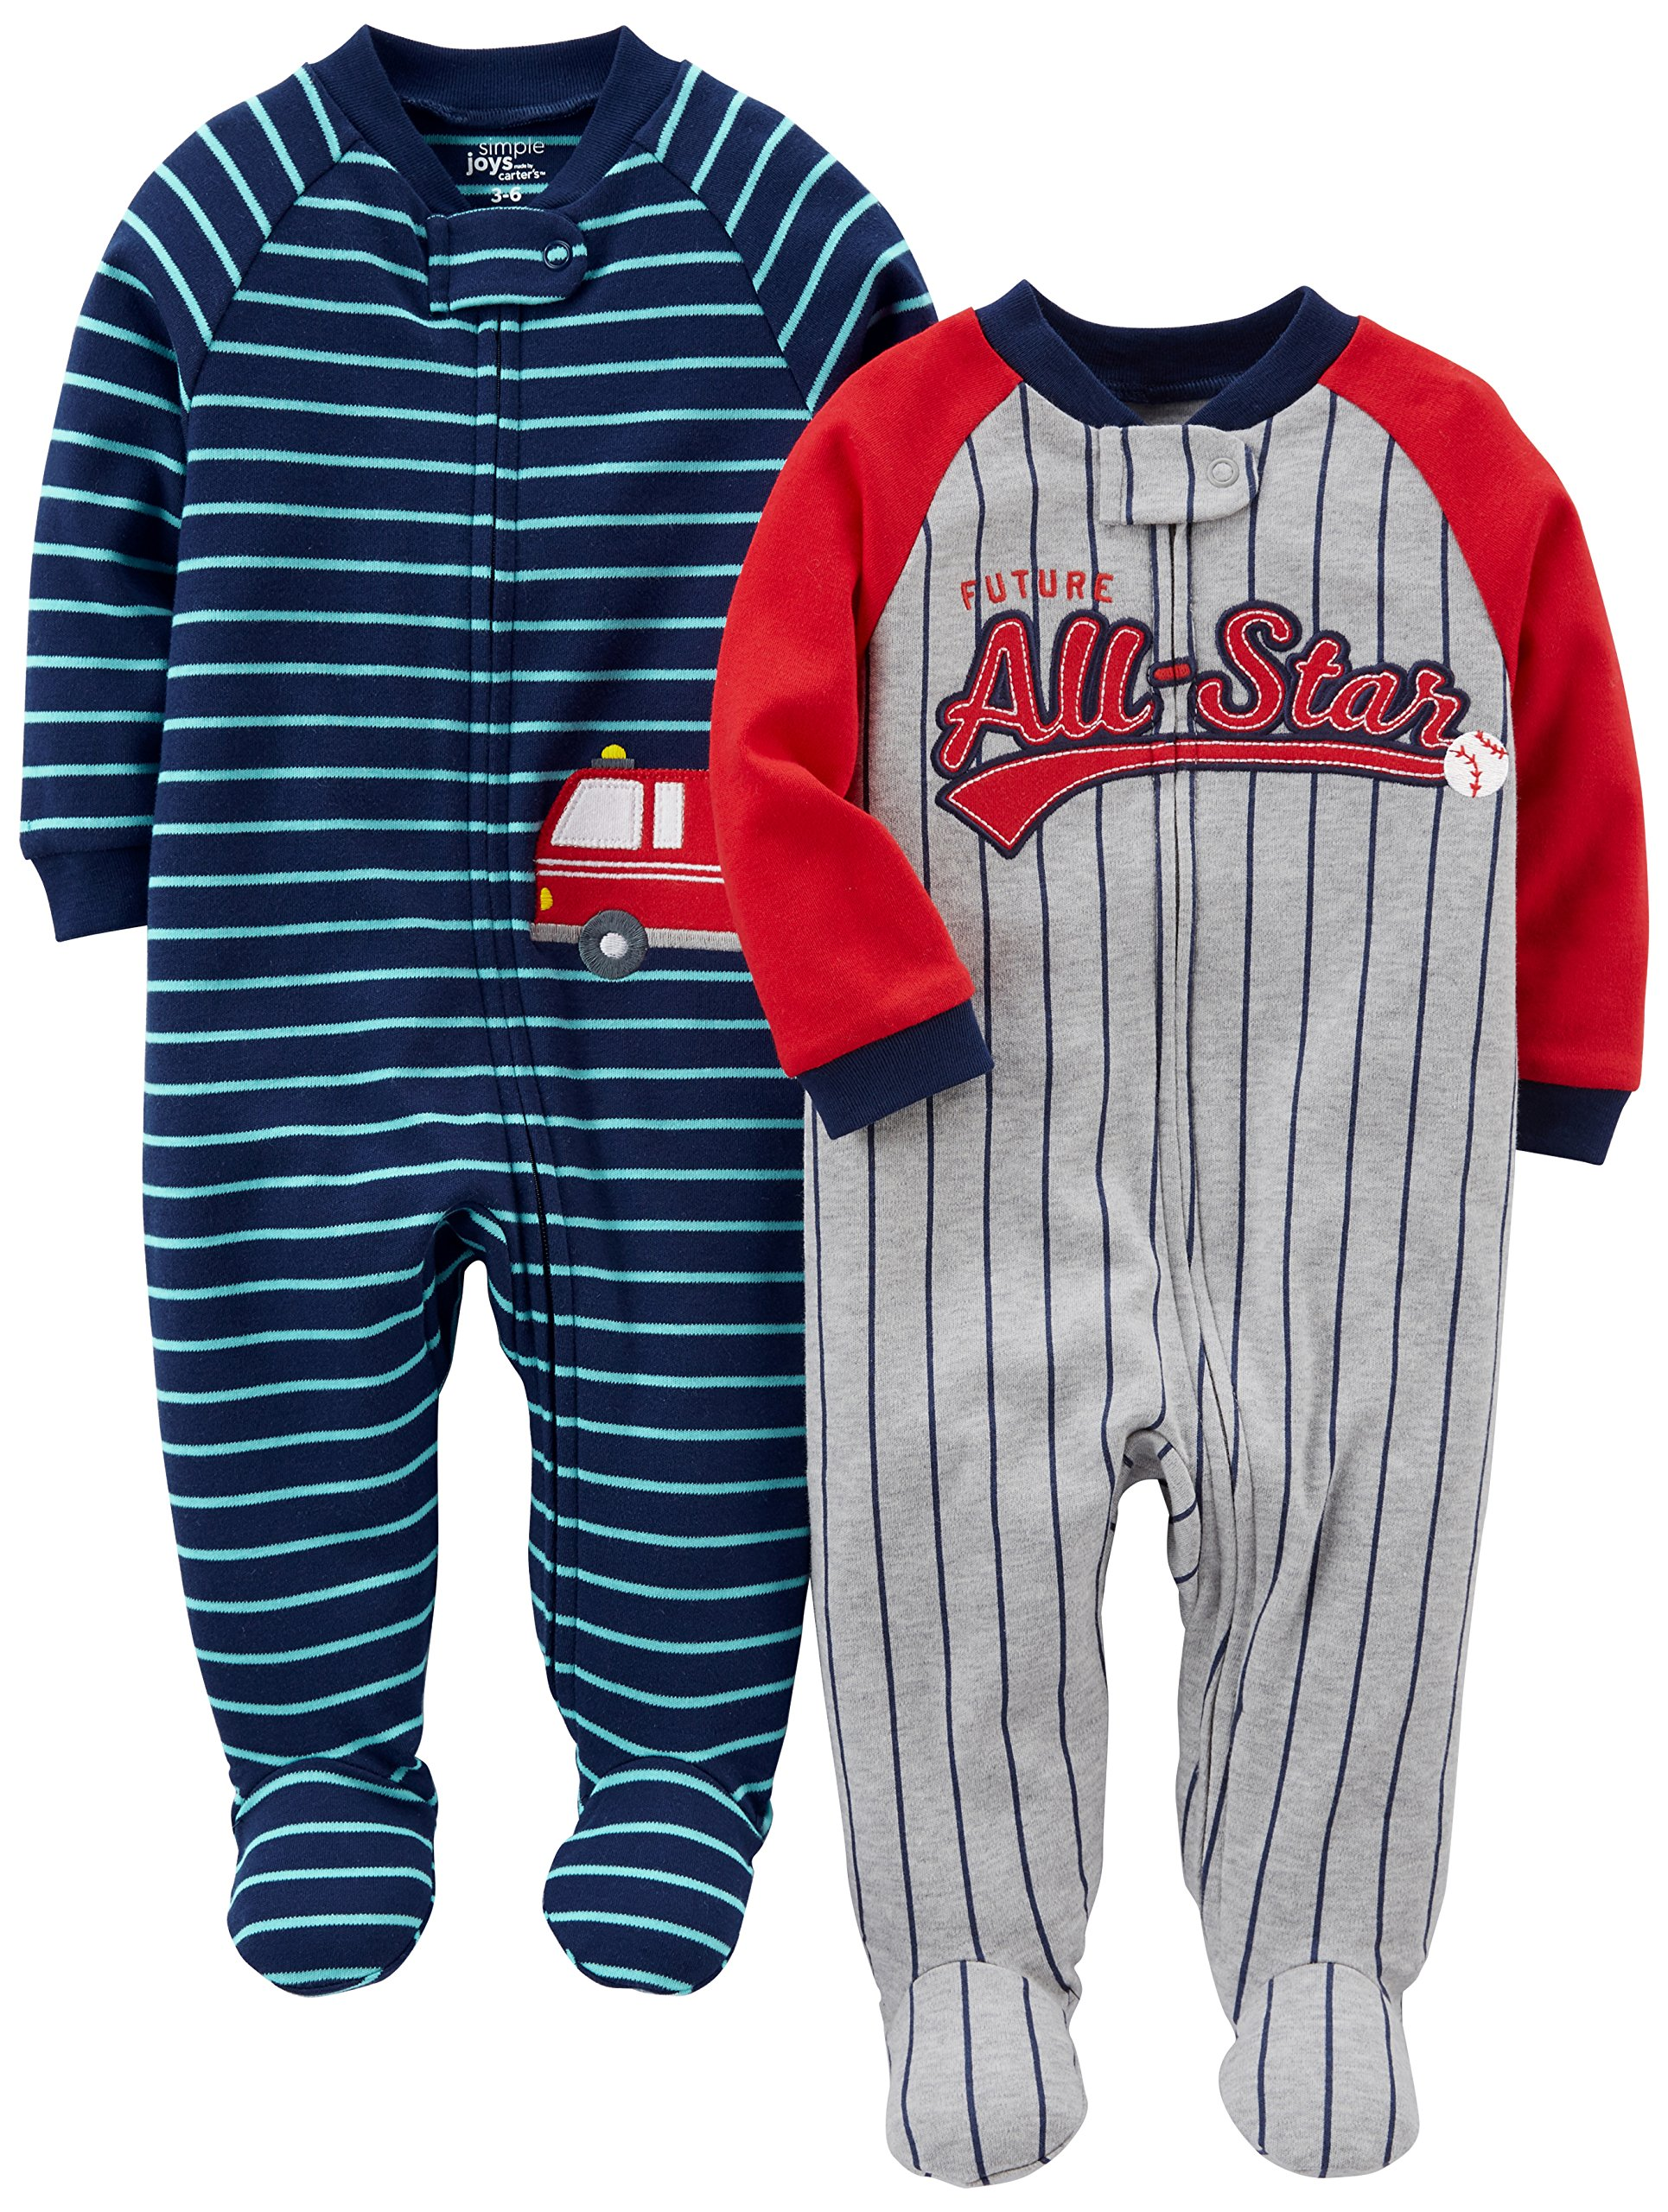 Simple Joys by Carter's Baby Boys' 2-Pack Cotton Footed Sleep and Play, All Star/Fire Truck, 3-6 Months